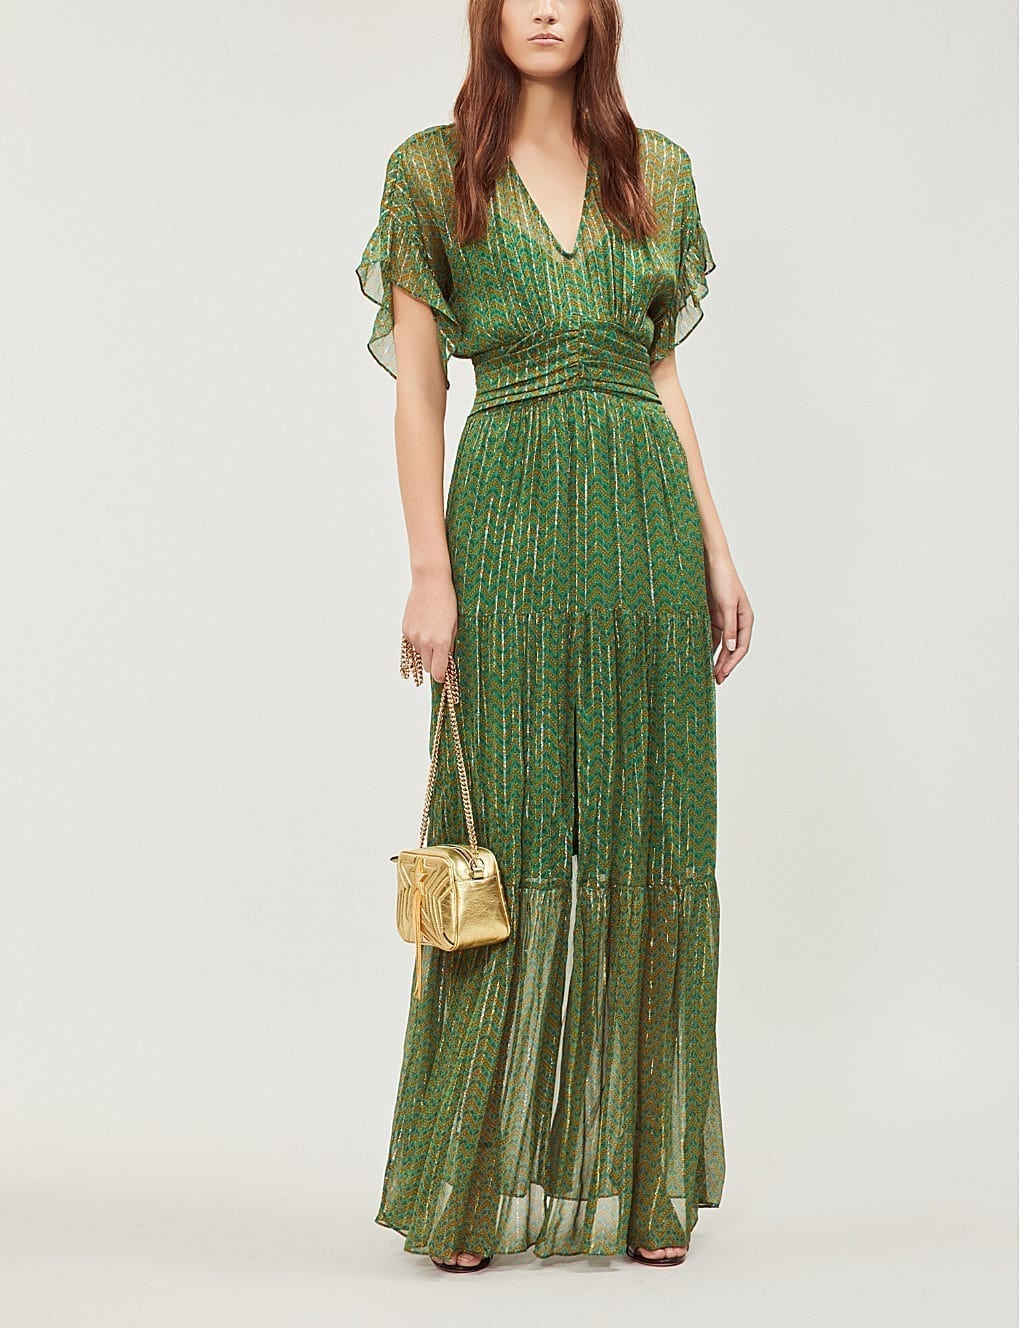 BA&SH Wanda Metallic Georgette Maxi Green Dress